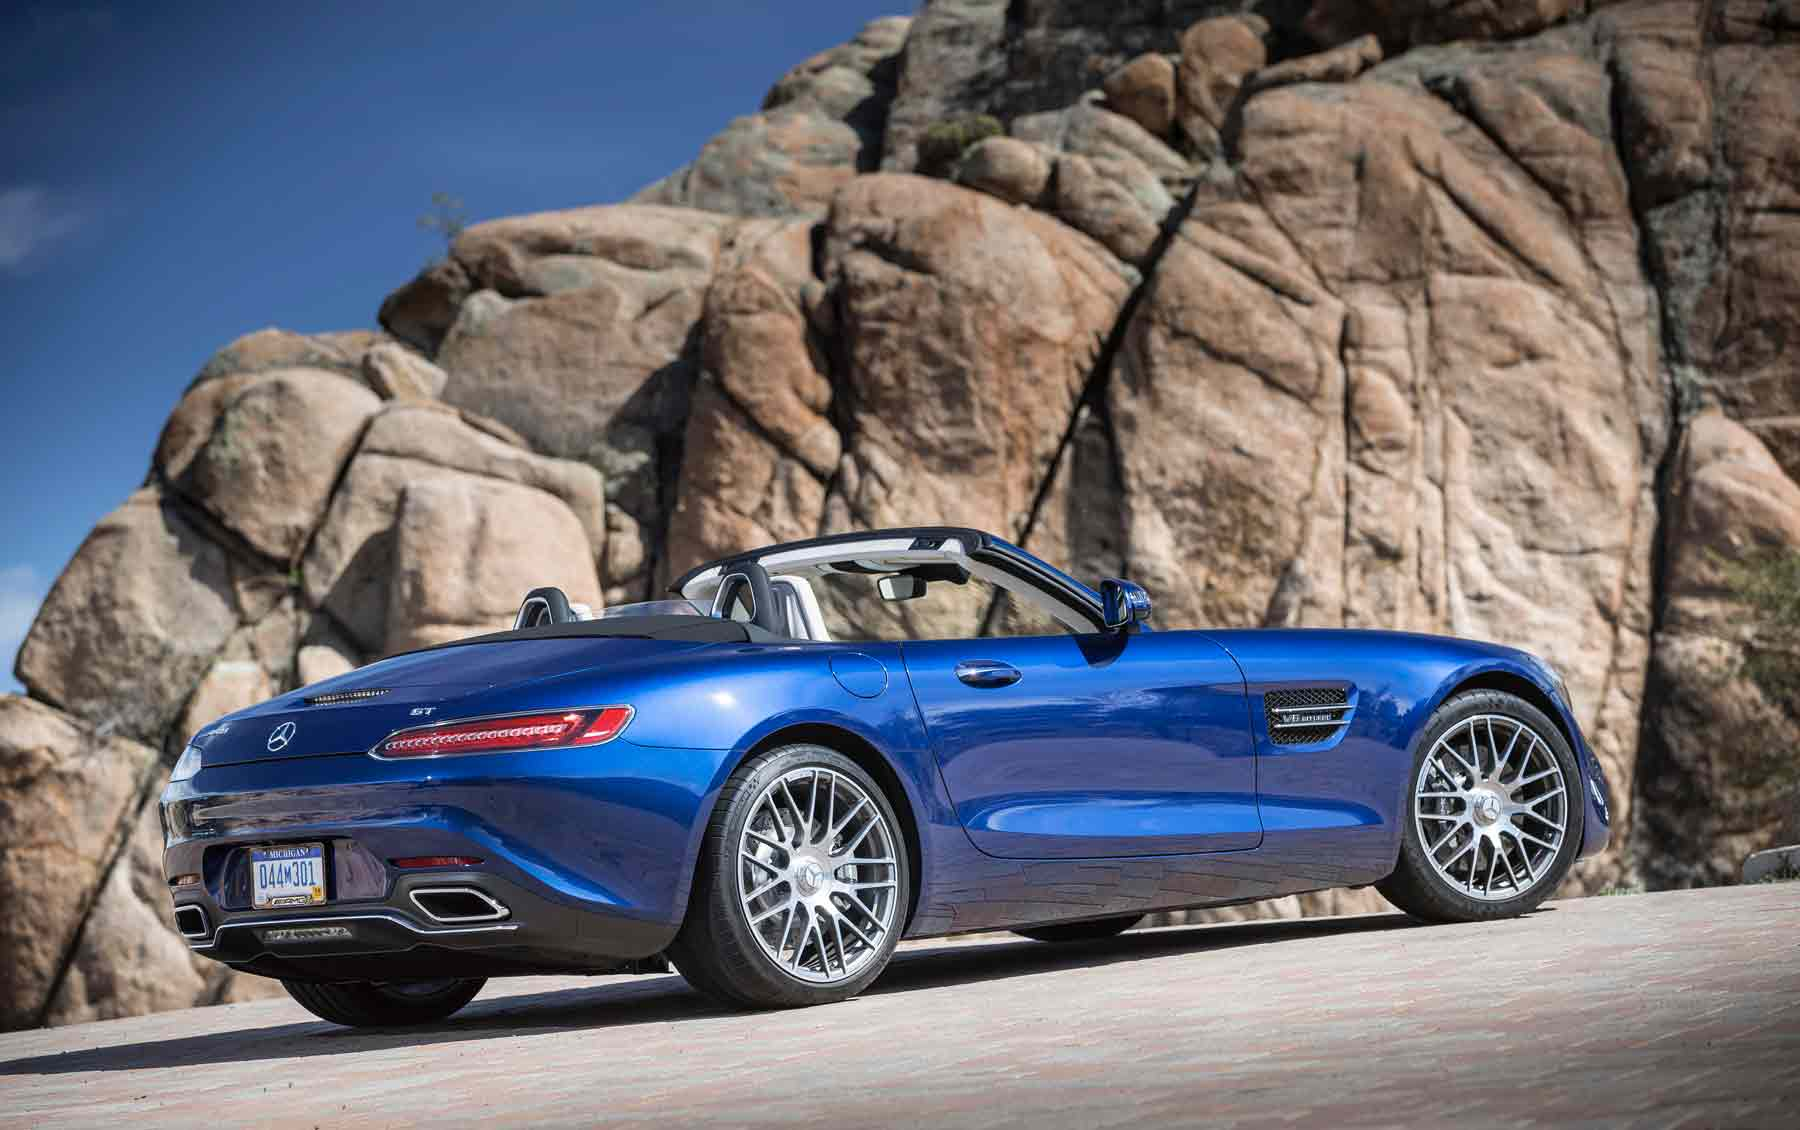 Retro Mercedes AMG GT Roadster